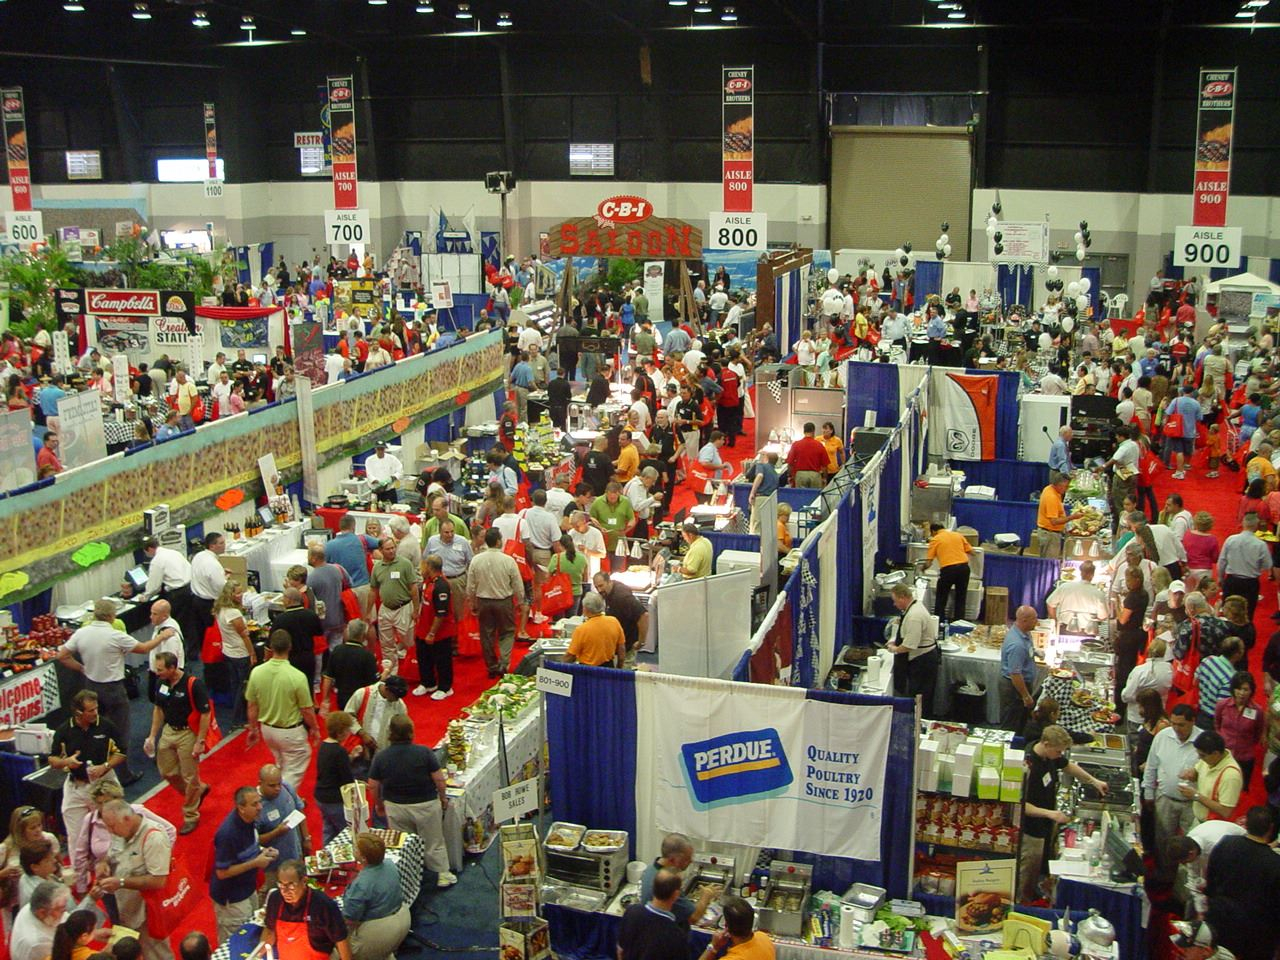 Rent The Facilities At The Expo Center At The South Florida With South Florida Fairgrounds Event Schedule